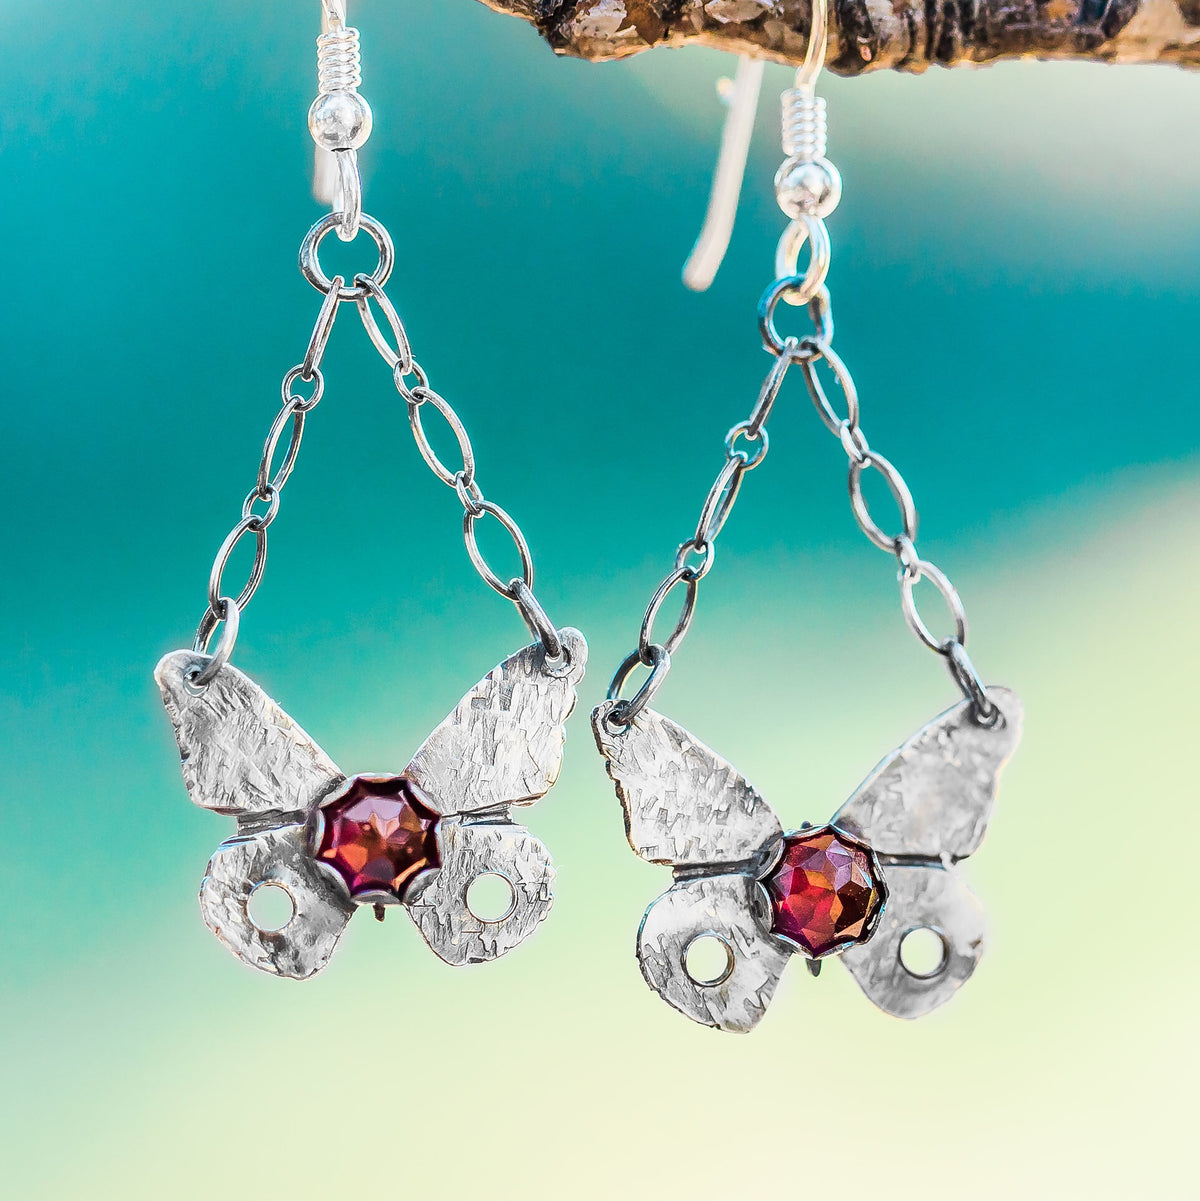 Sterling Silver Butterfly Earrings with Garnet Gemstone hang on a branch